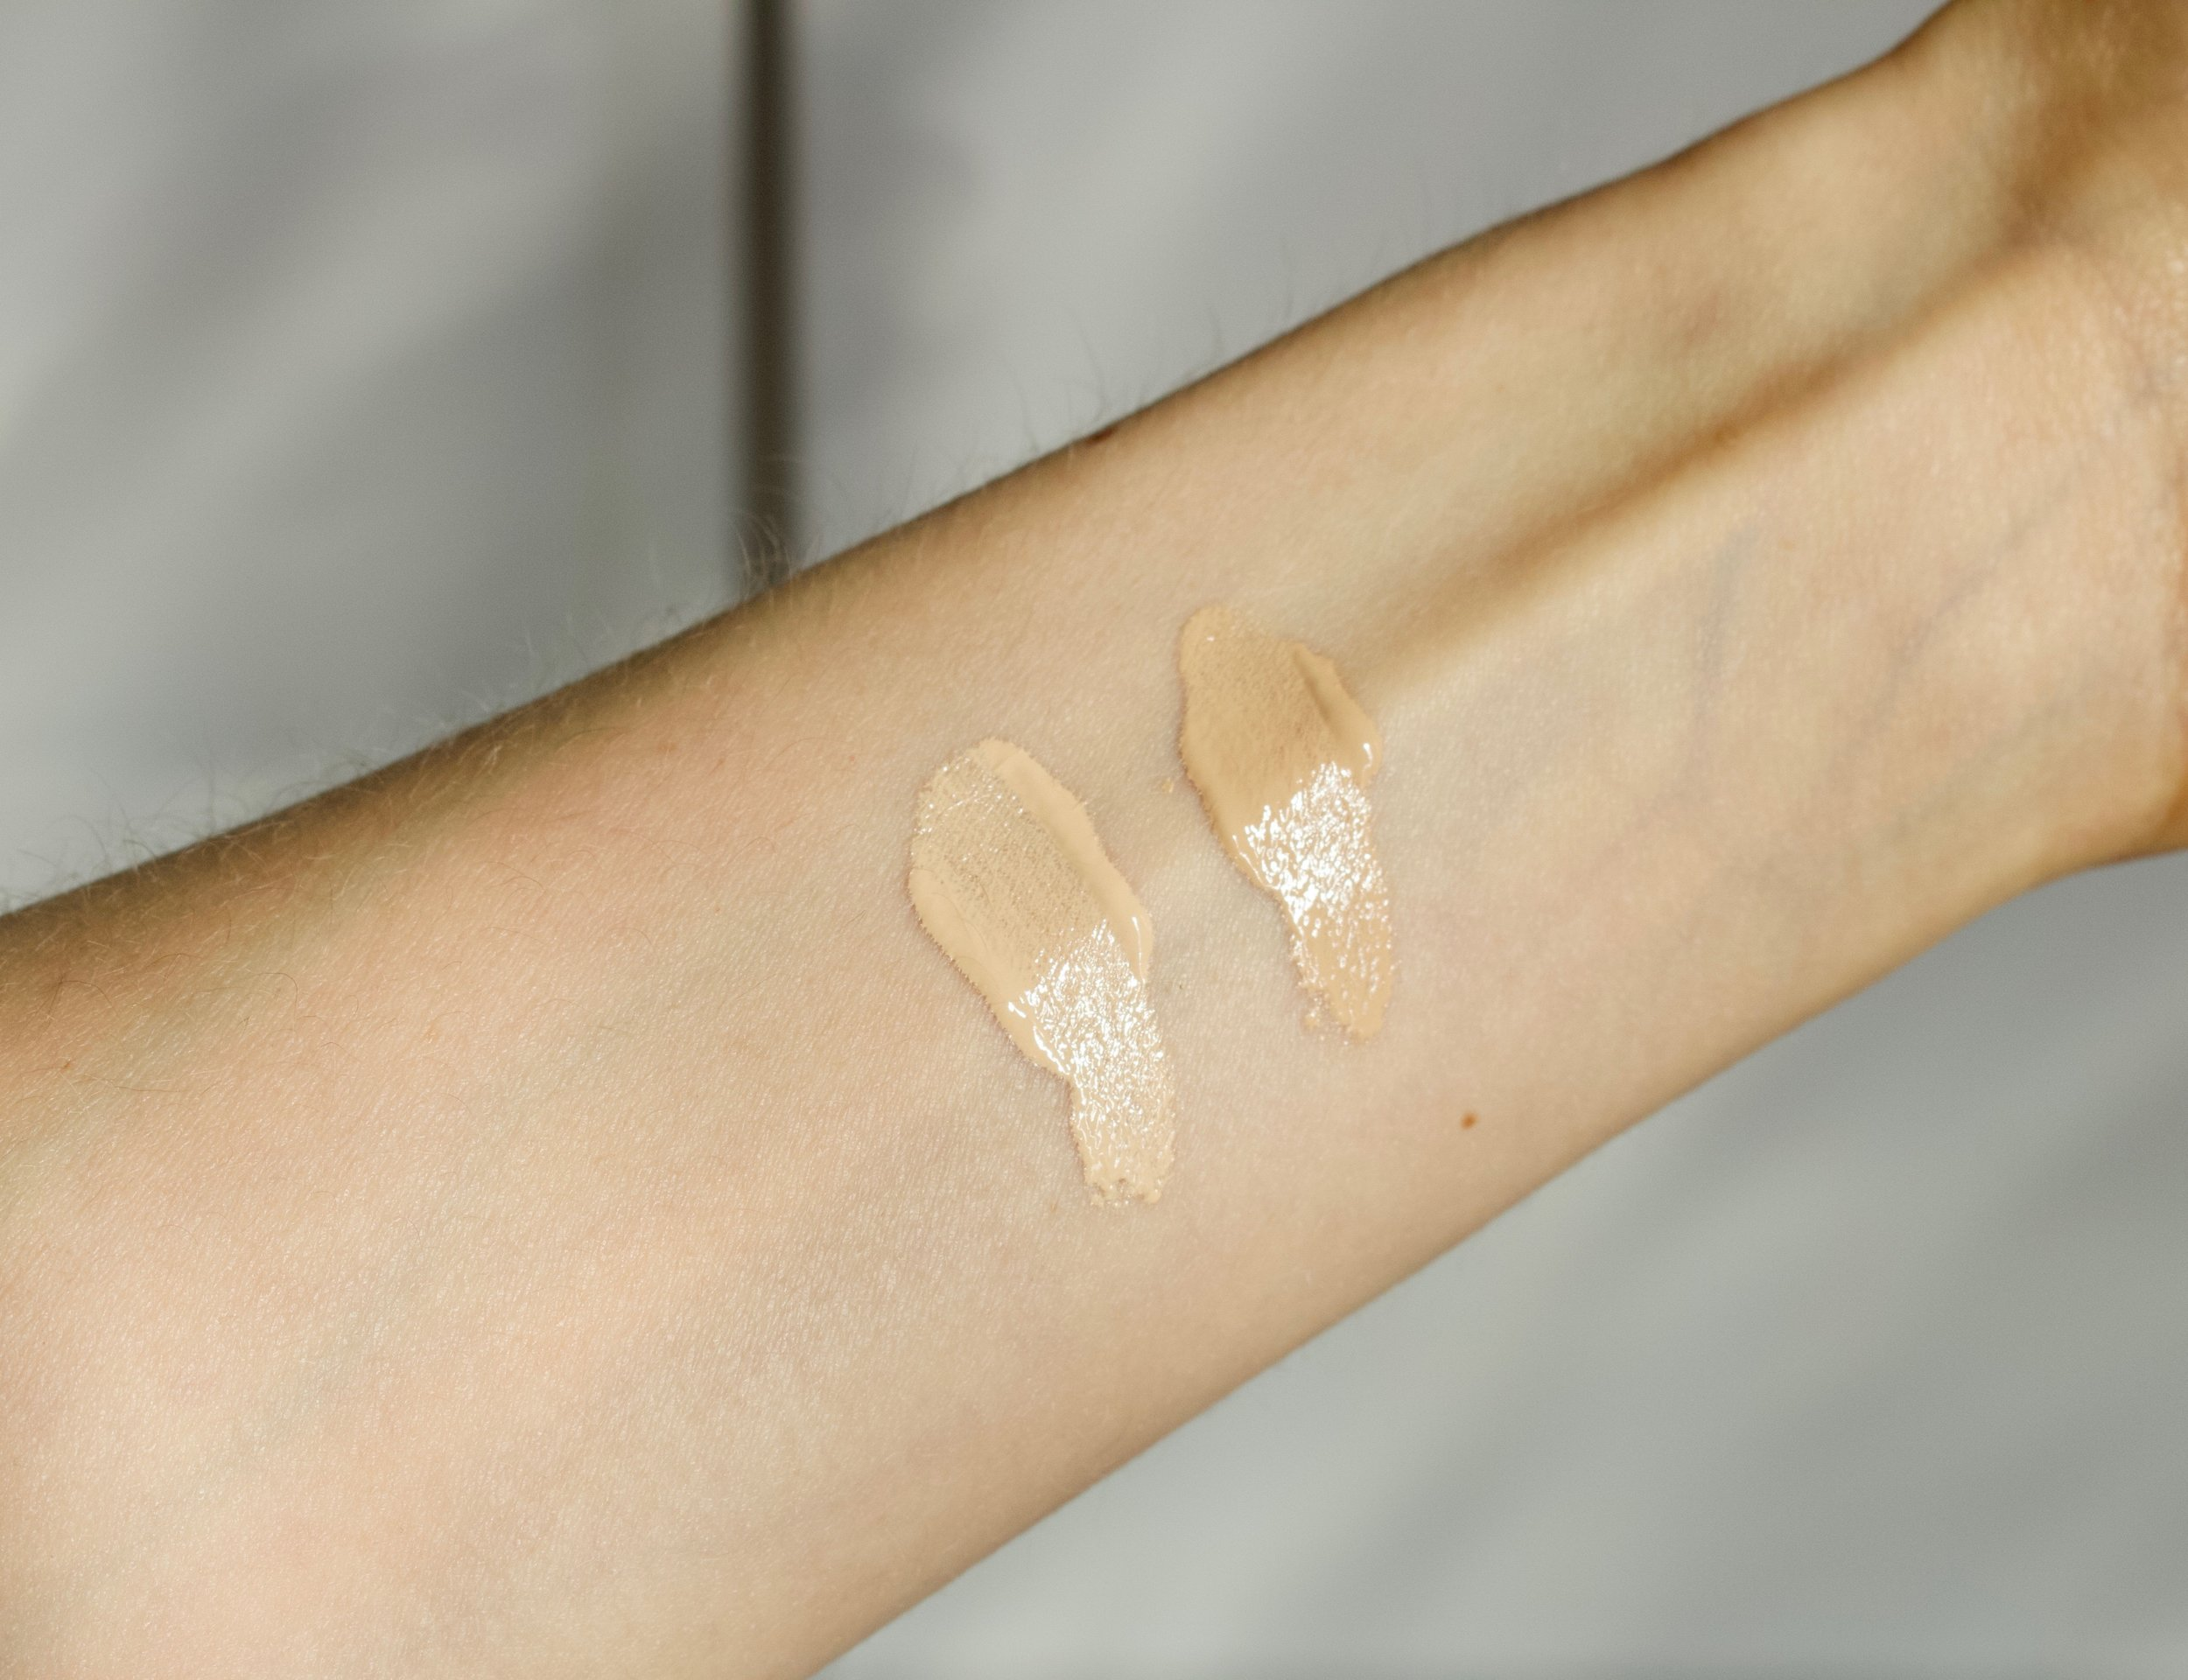 From left to right: Sable (0.5) and Mallorca (1.5).